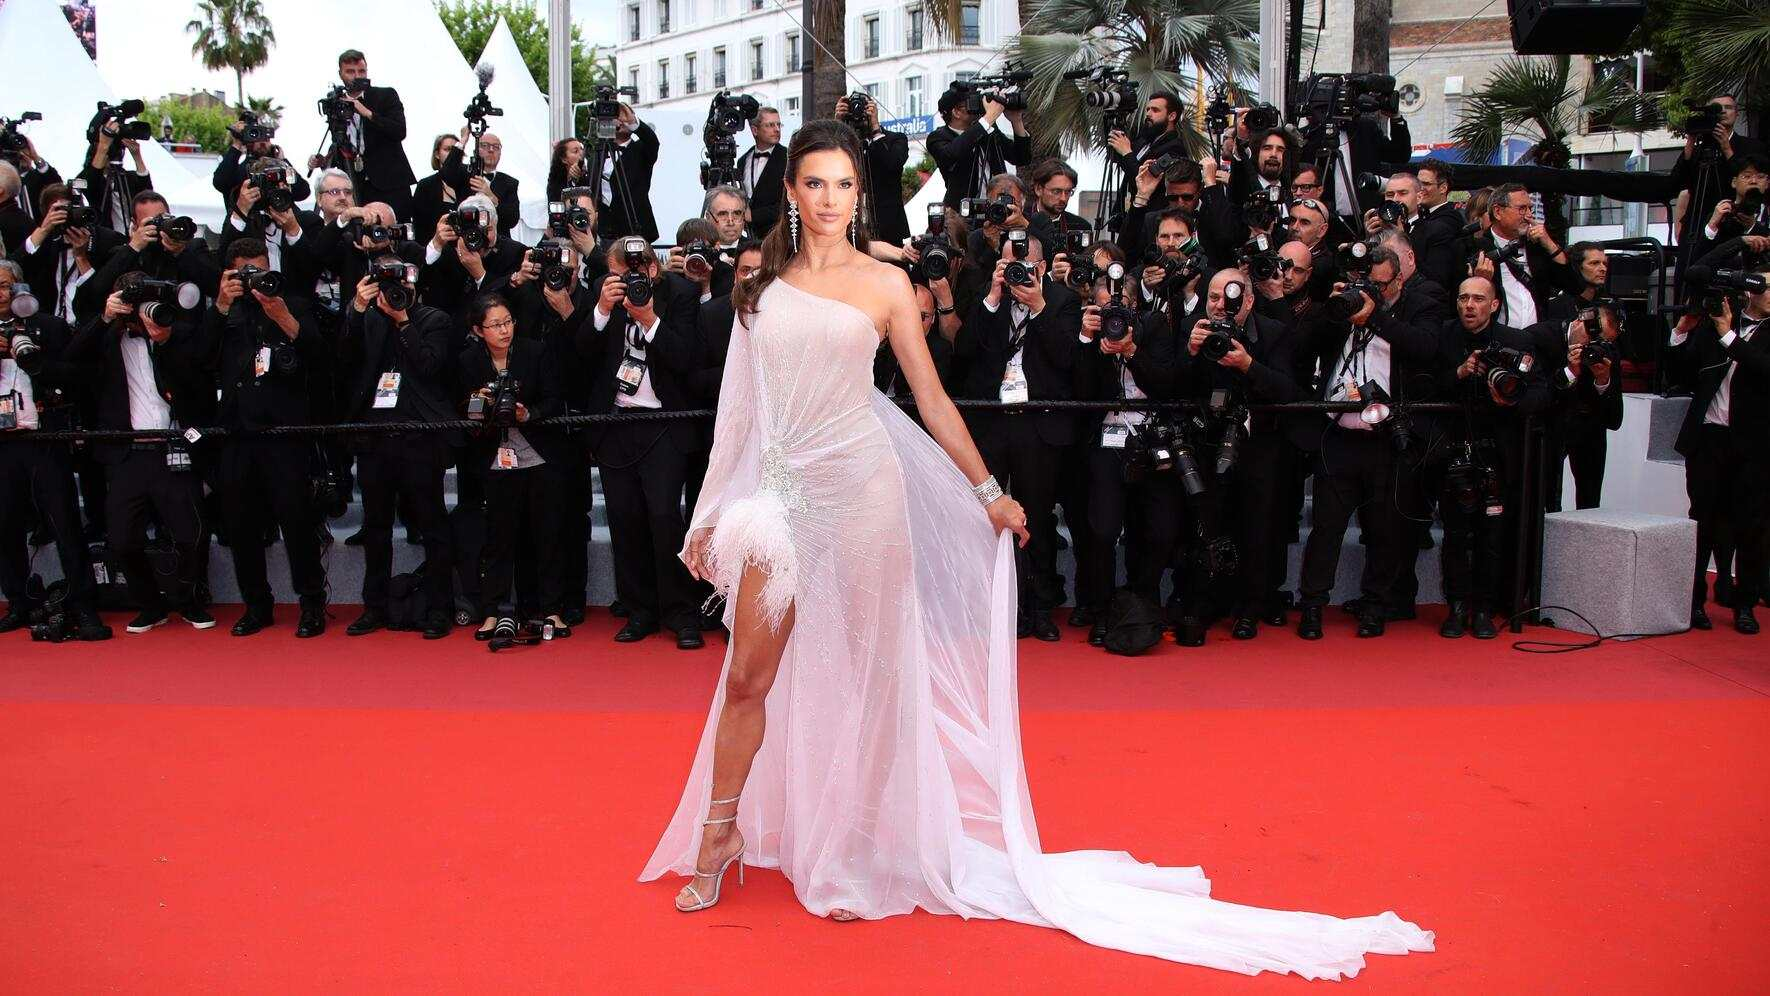 """CANNES, FRANCE - MAY 14: Alessandra Ambrosio attends the opening ceremony and screening of """"The Dead Don't Die"""" during the 72nd annual Cannes Film Festival on May 14, 2019 in Cannes, France. (Photo by Mike Marsland/WireImage)"""